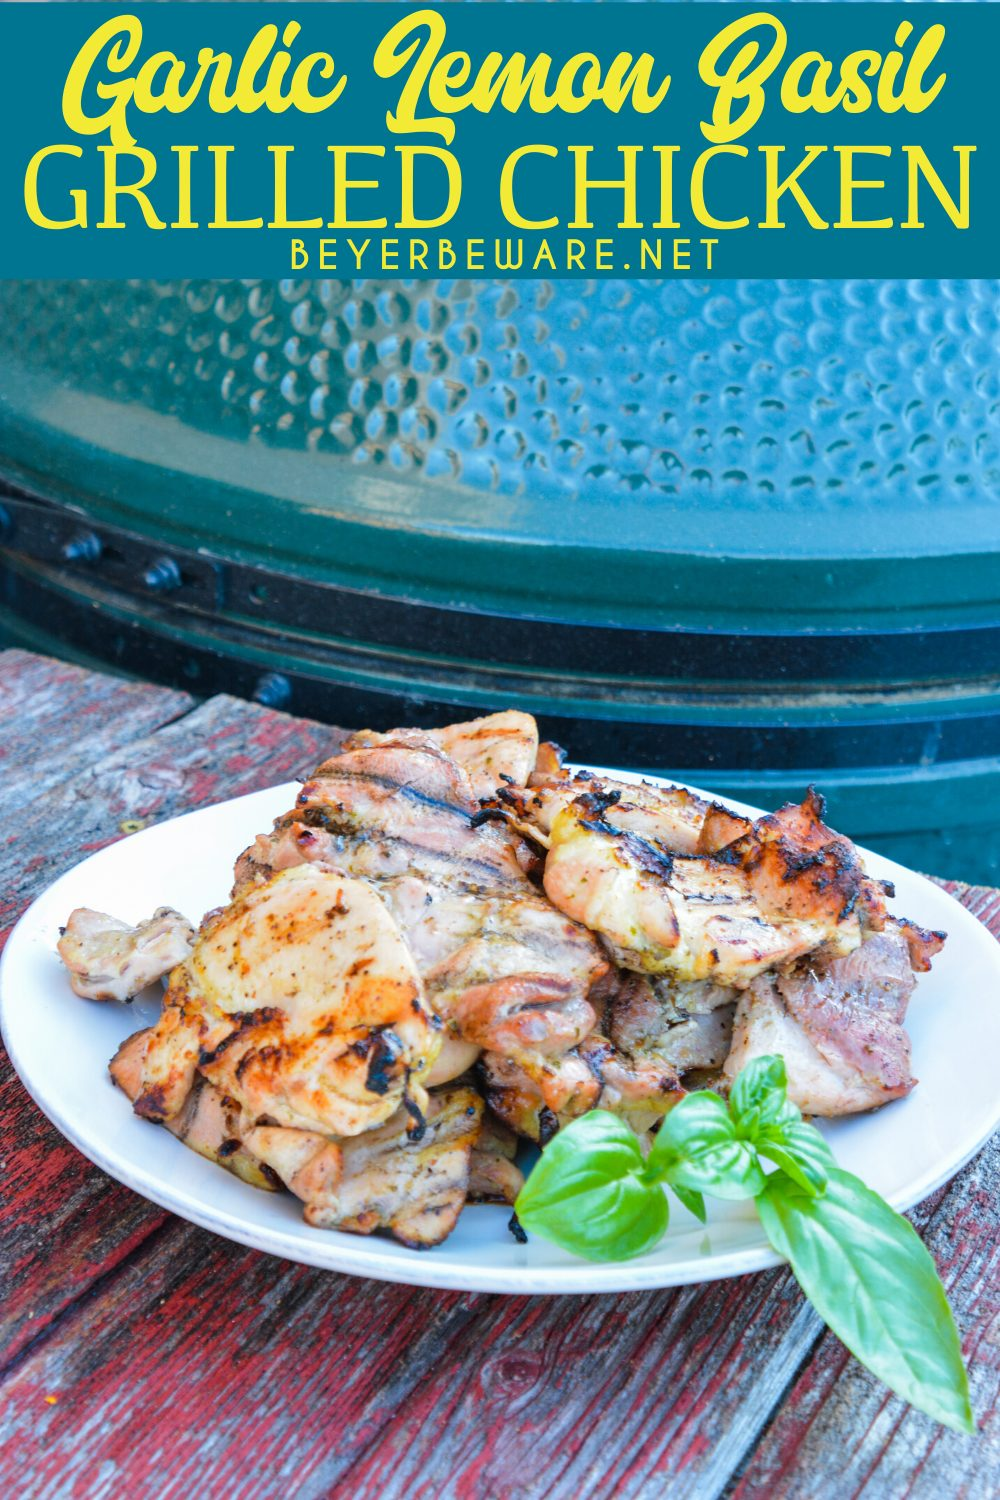 Garlic Lemon Basil Grilled Chicken is the perfect summer dinner idea. The marinade is made with white wine, lemon, limes, mustard, garlic, and basil.